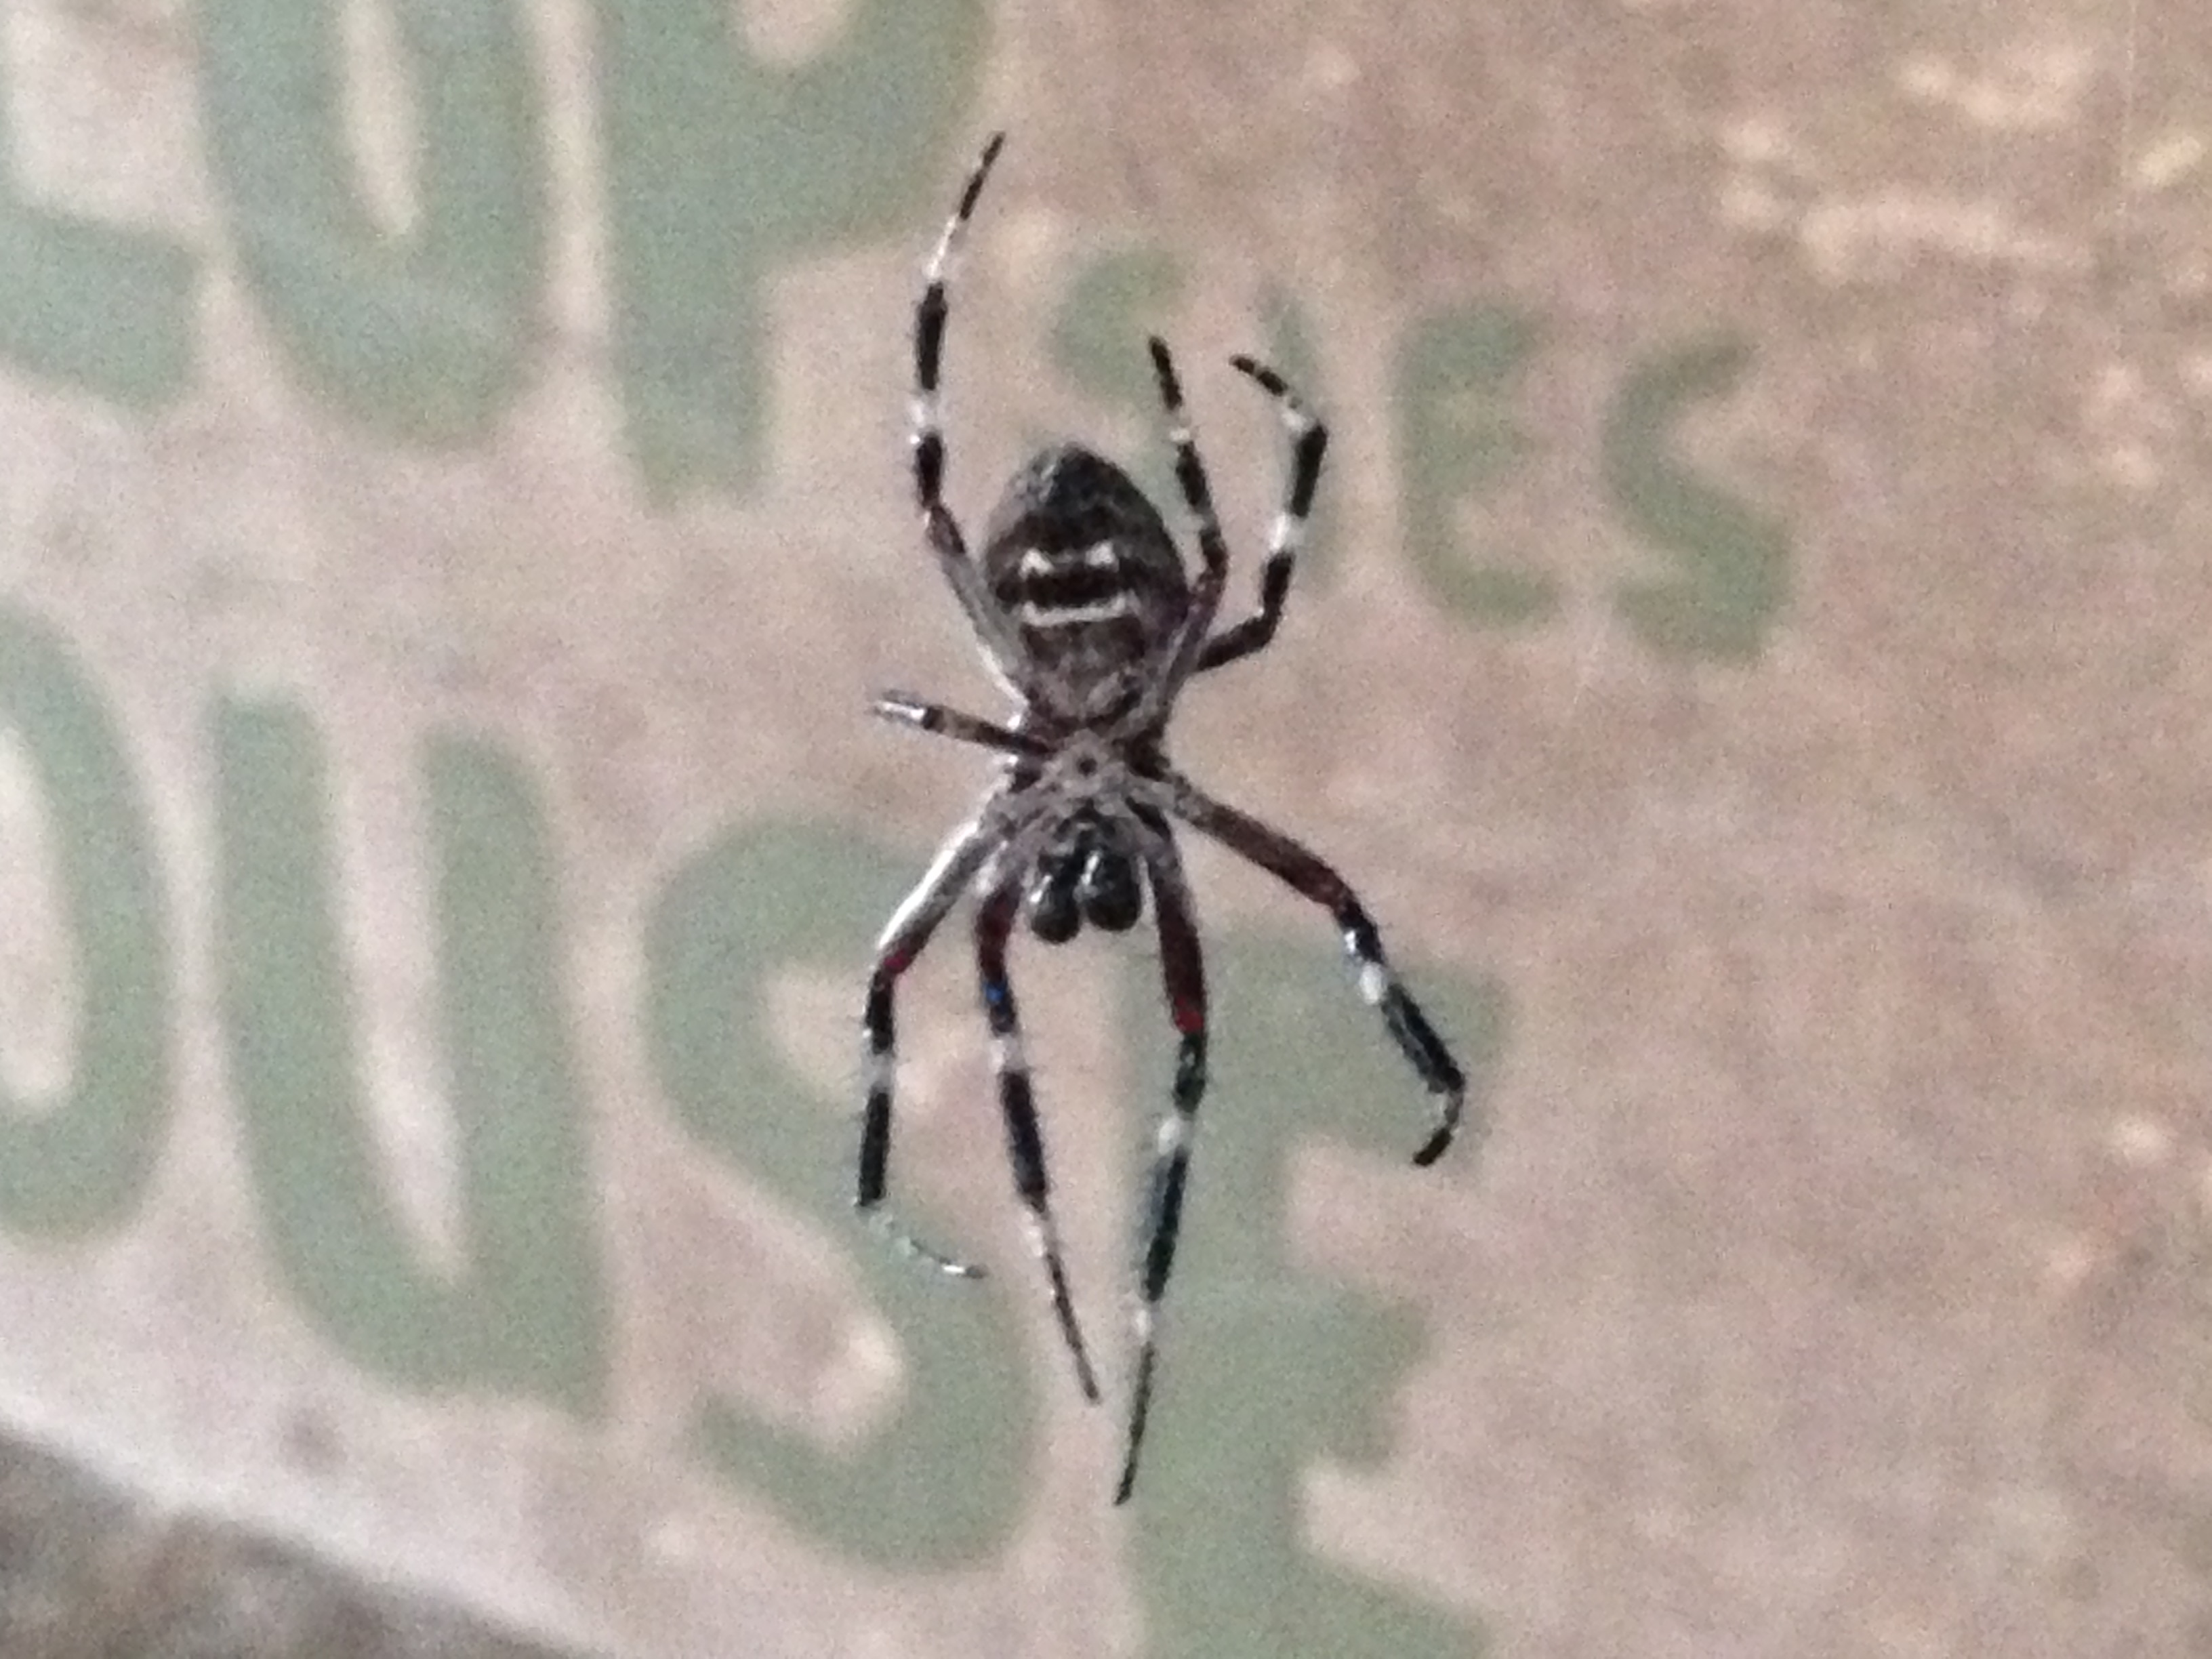 Fabulous spider, probably an orb